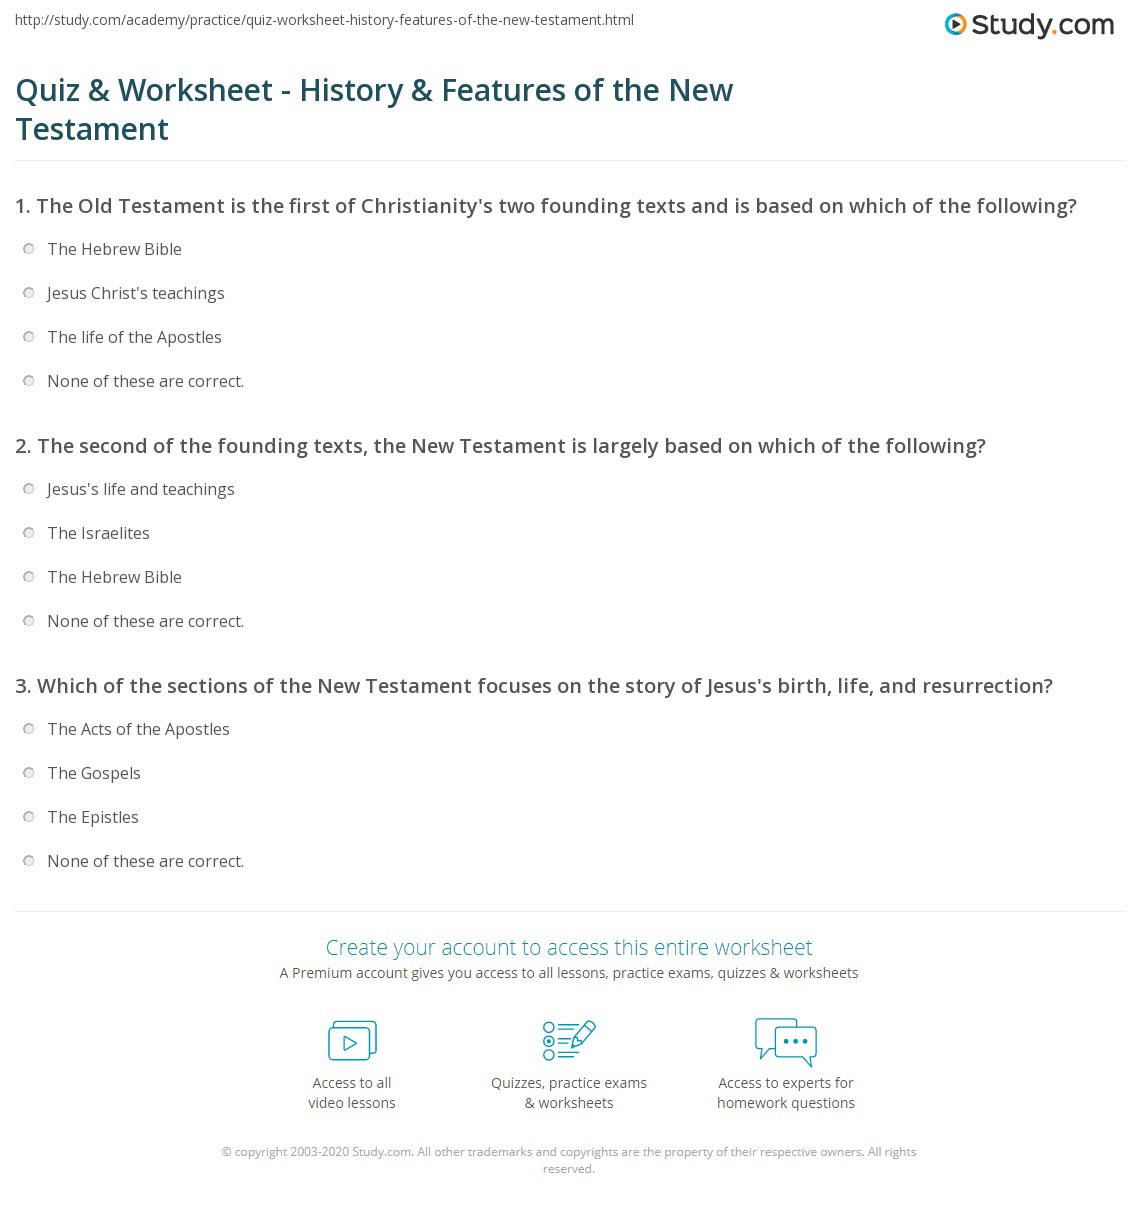 the new testament questions and answers Tour start here for a quick overview of the site help center detailed answers to any questions you might have meta discuss the workings and policies of this site.